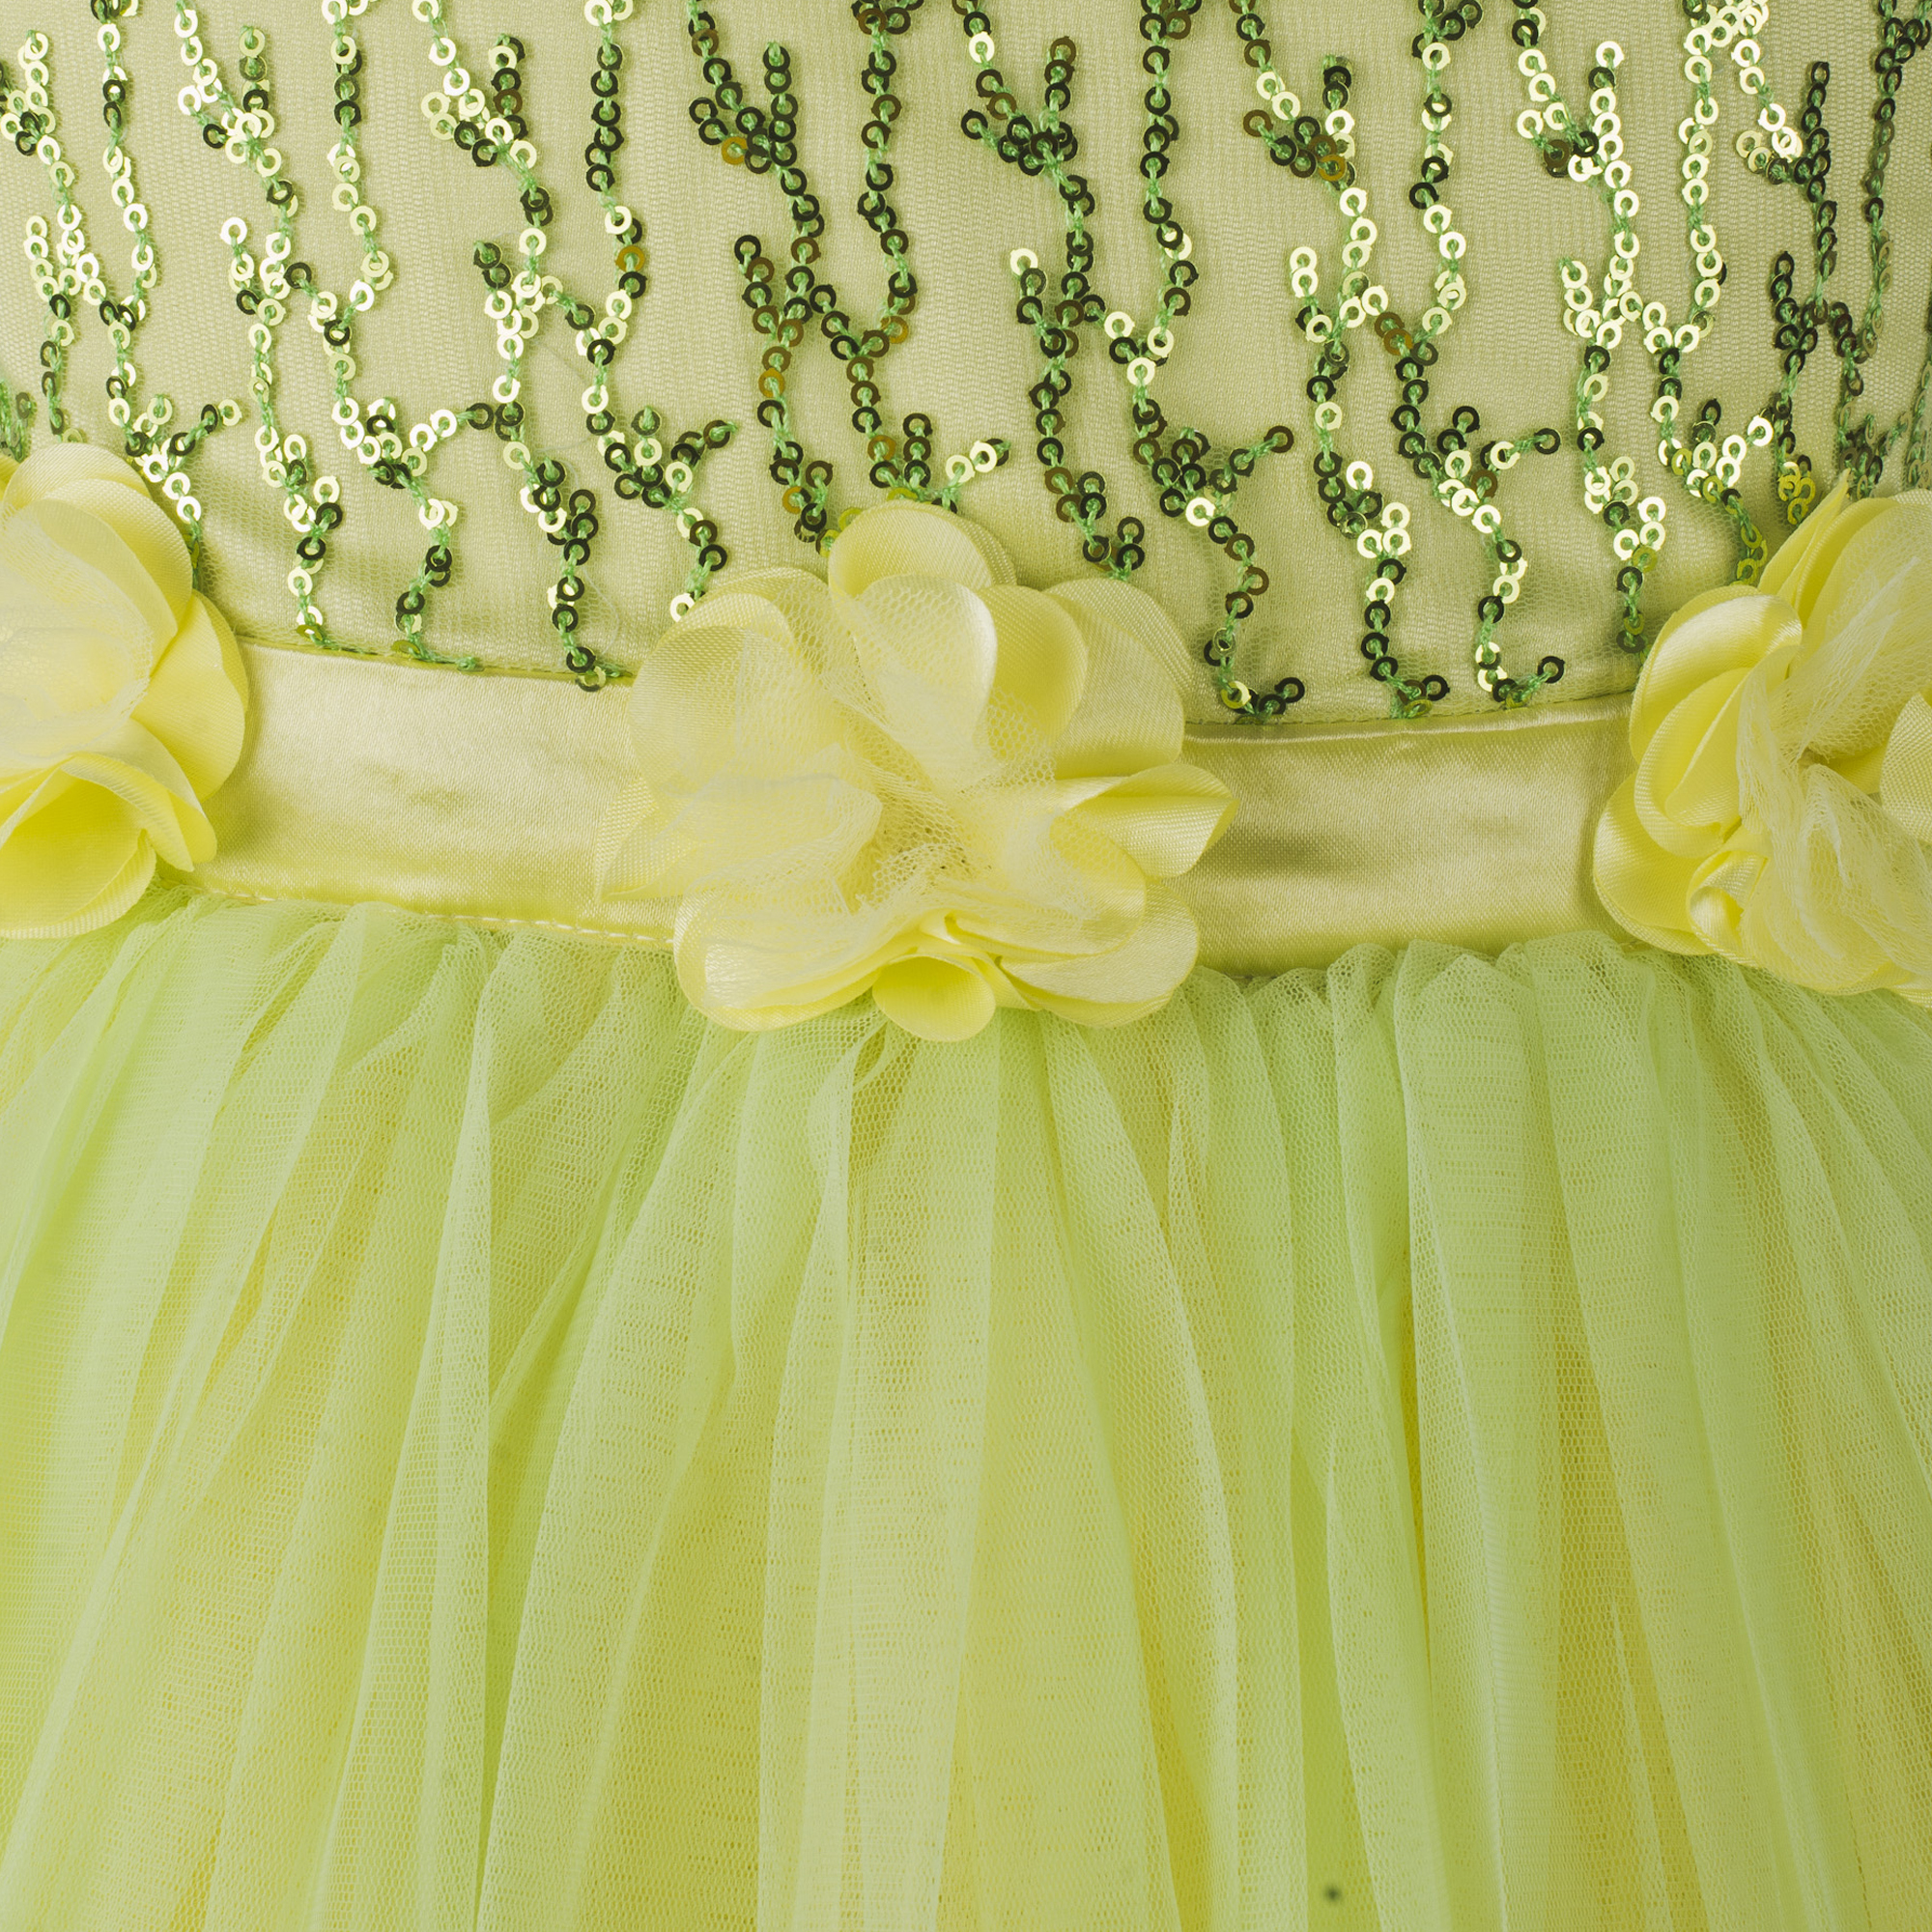 Kids sequence embellished Yellow party wear frock